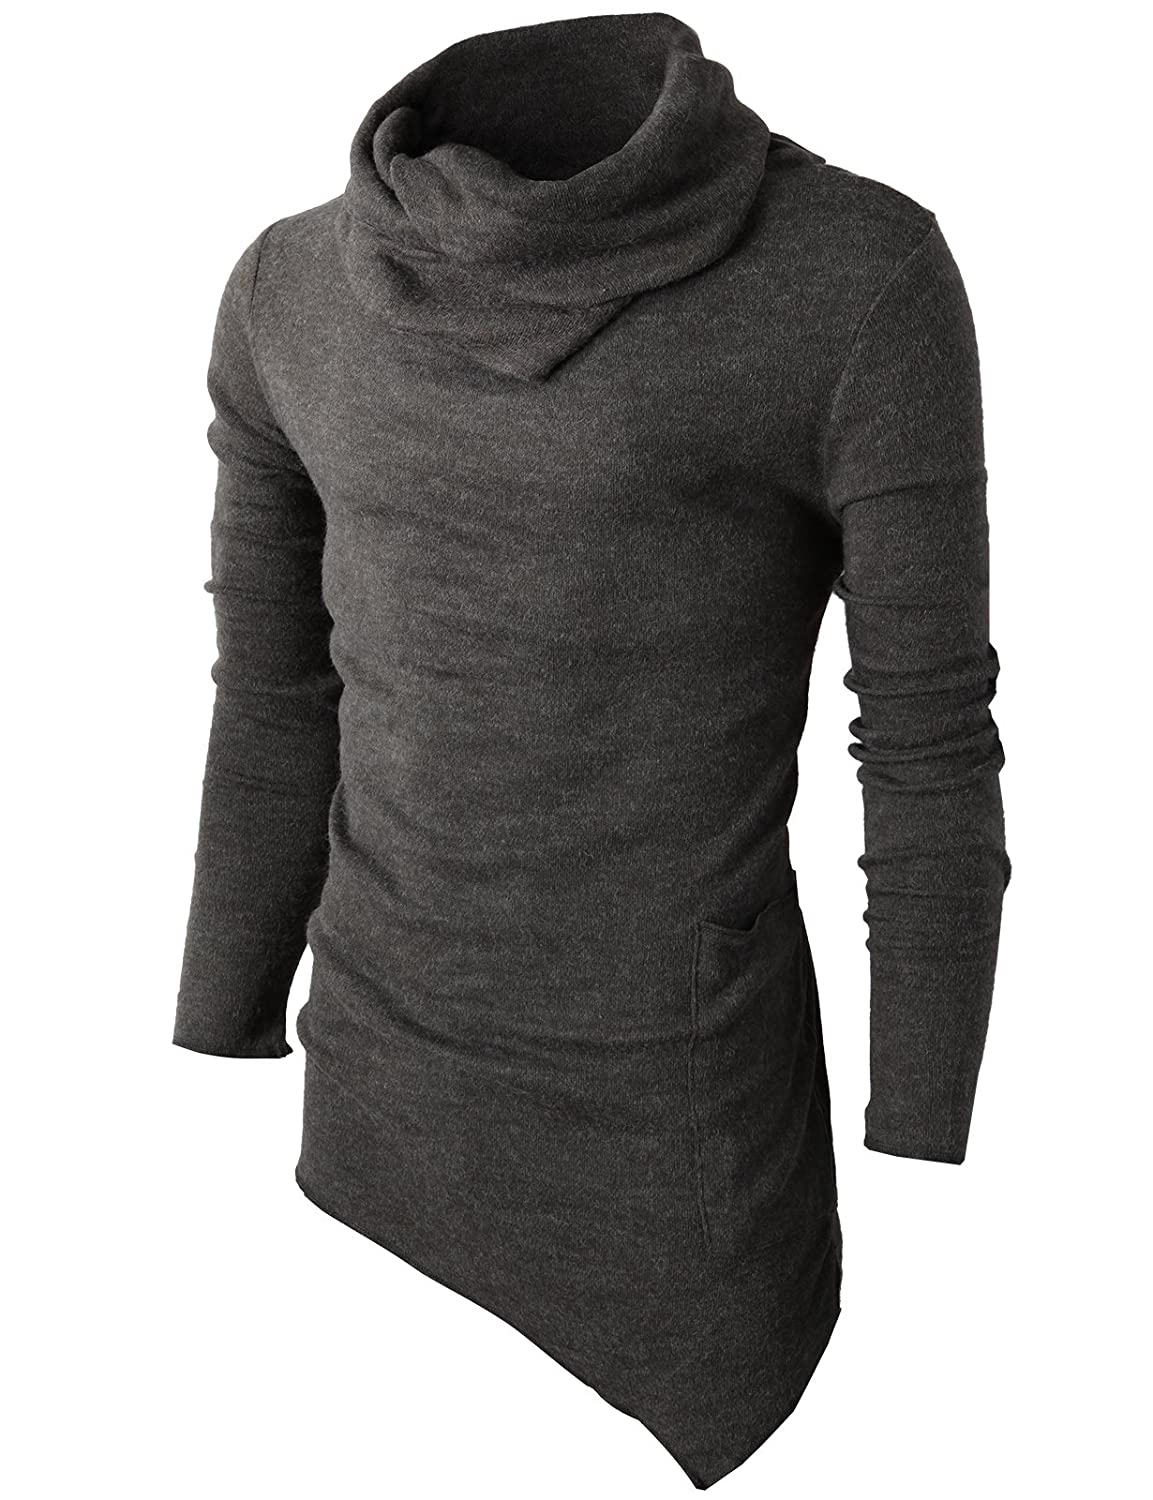 H2H Men's Casual Turtleneck Slim Fit Pullover Sweater Oblique Line Bottom Edge